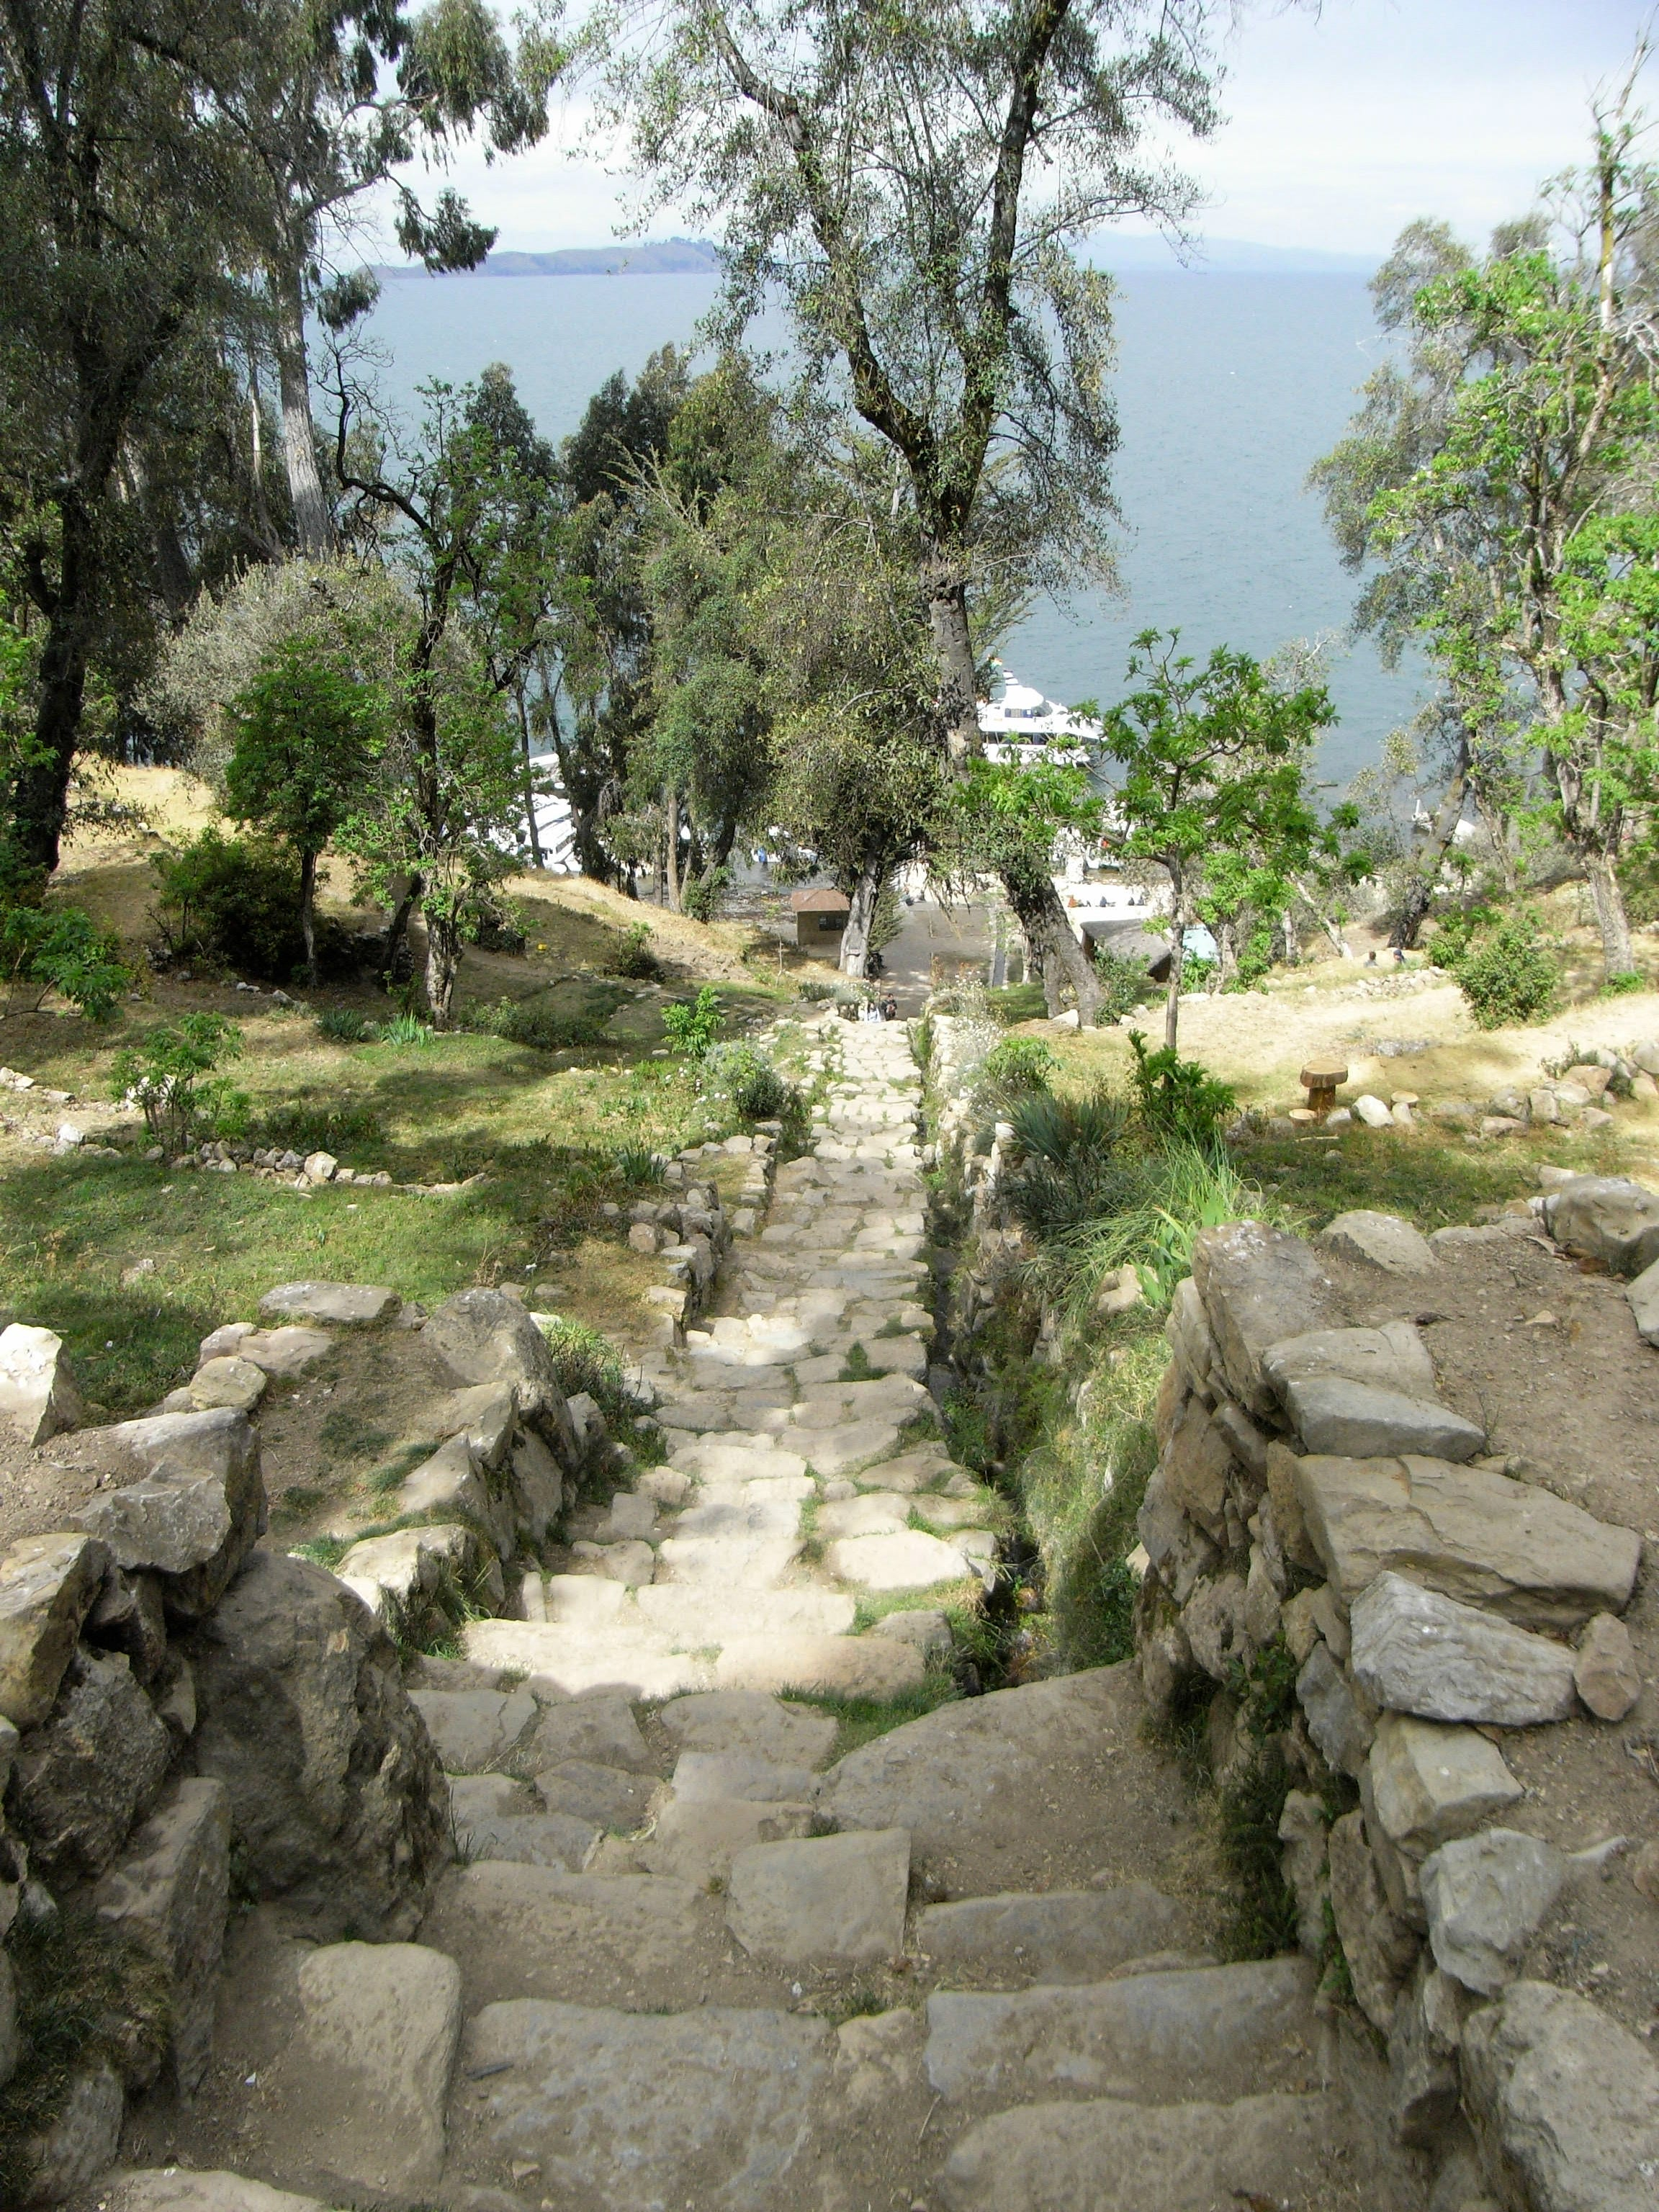 The Inca Stair